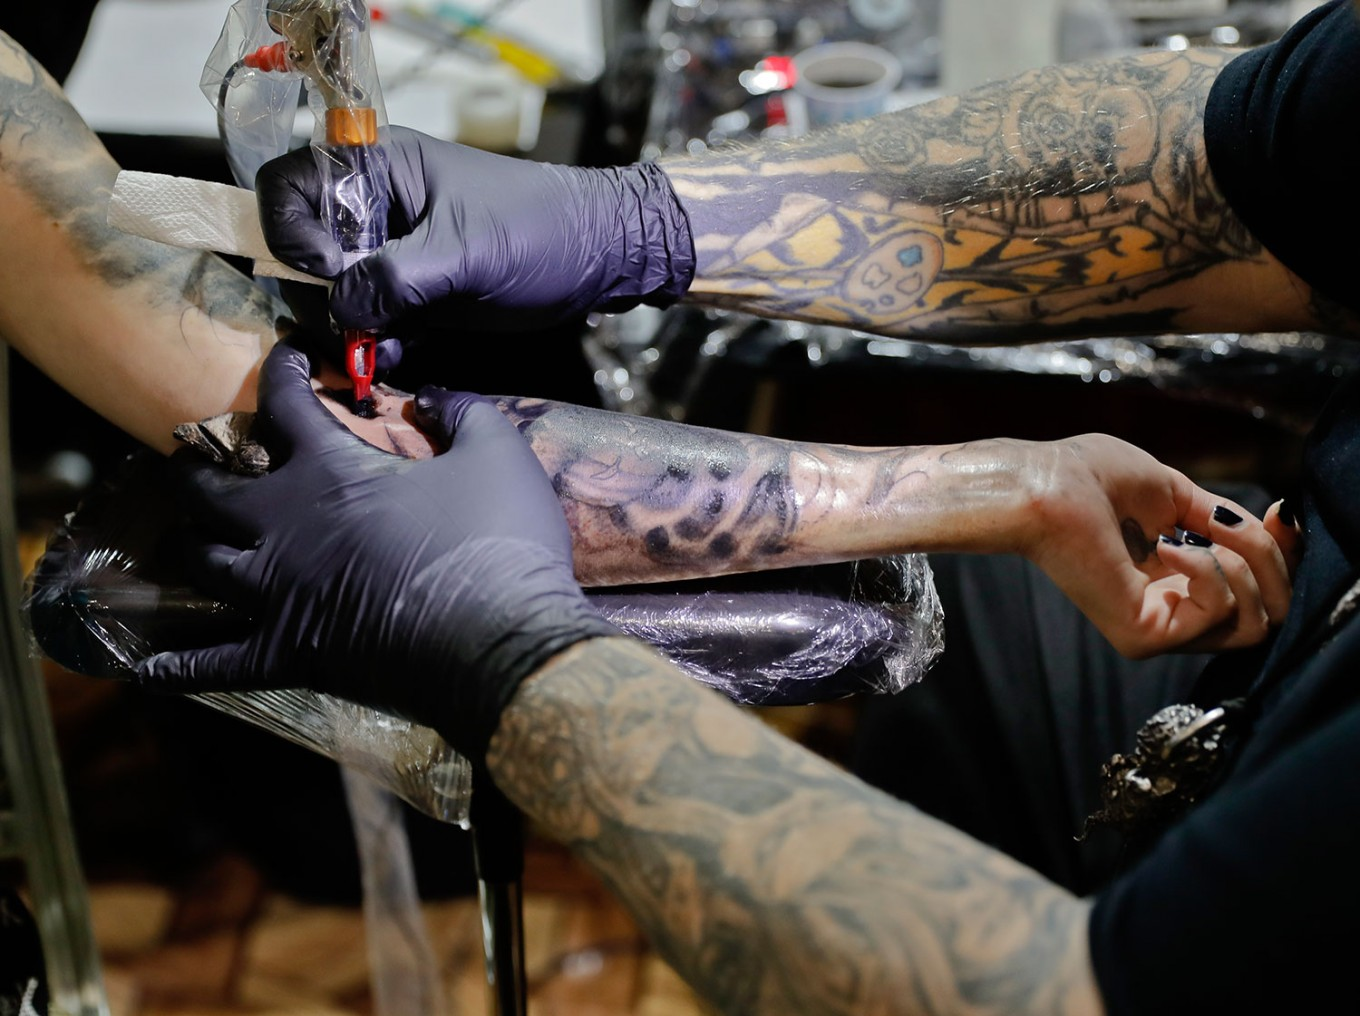 In this picture taken on Sunday, Oct. 16, 2016, Paul Booth of the U.S., one of the world's most famous tattoo artists, works during the International Tattoo Convention Bucharest 2016 in Bucharest, Romania. AP Photo/Vadim Ghirda